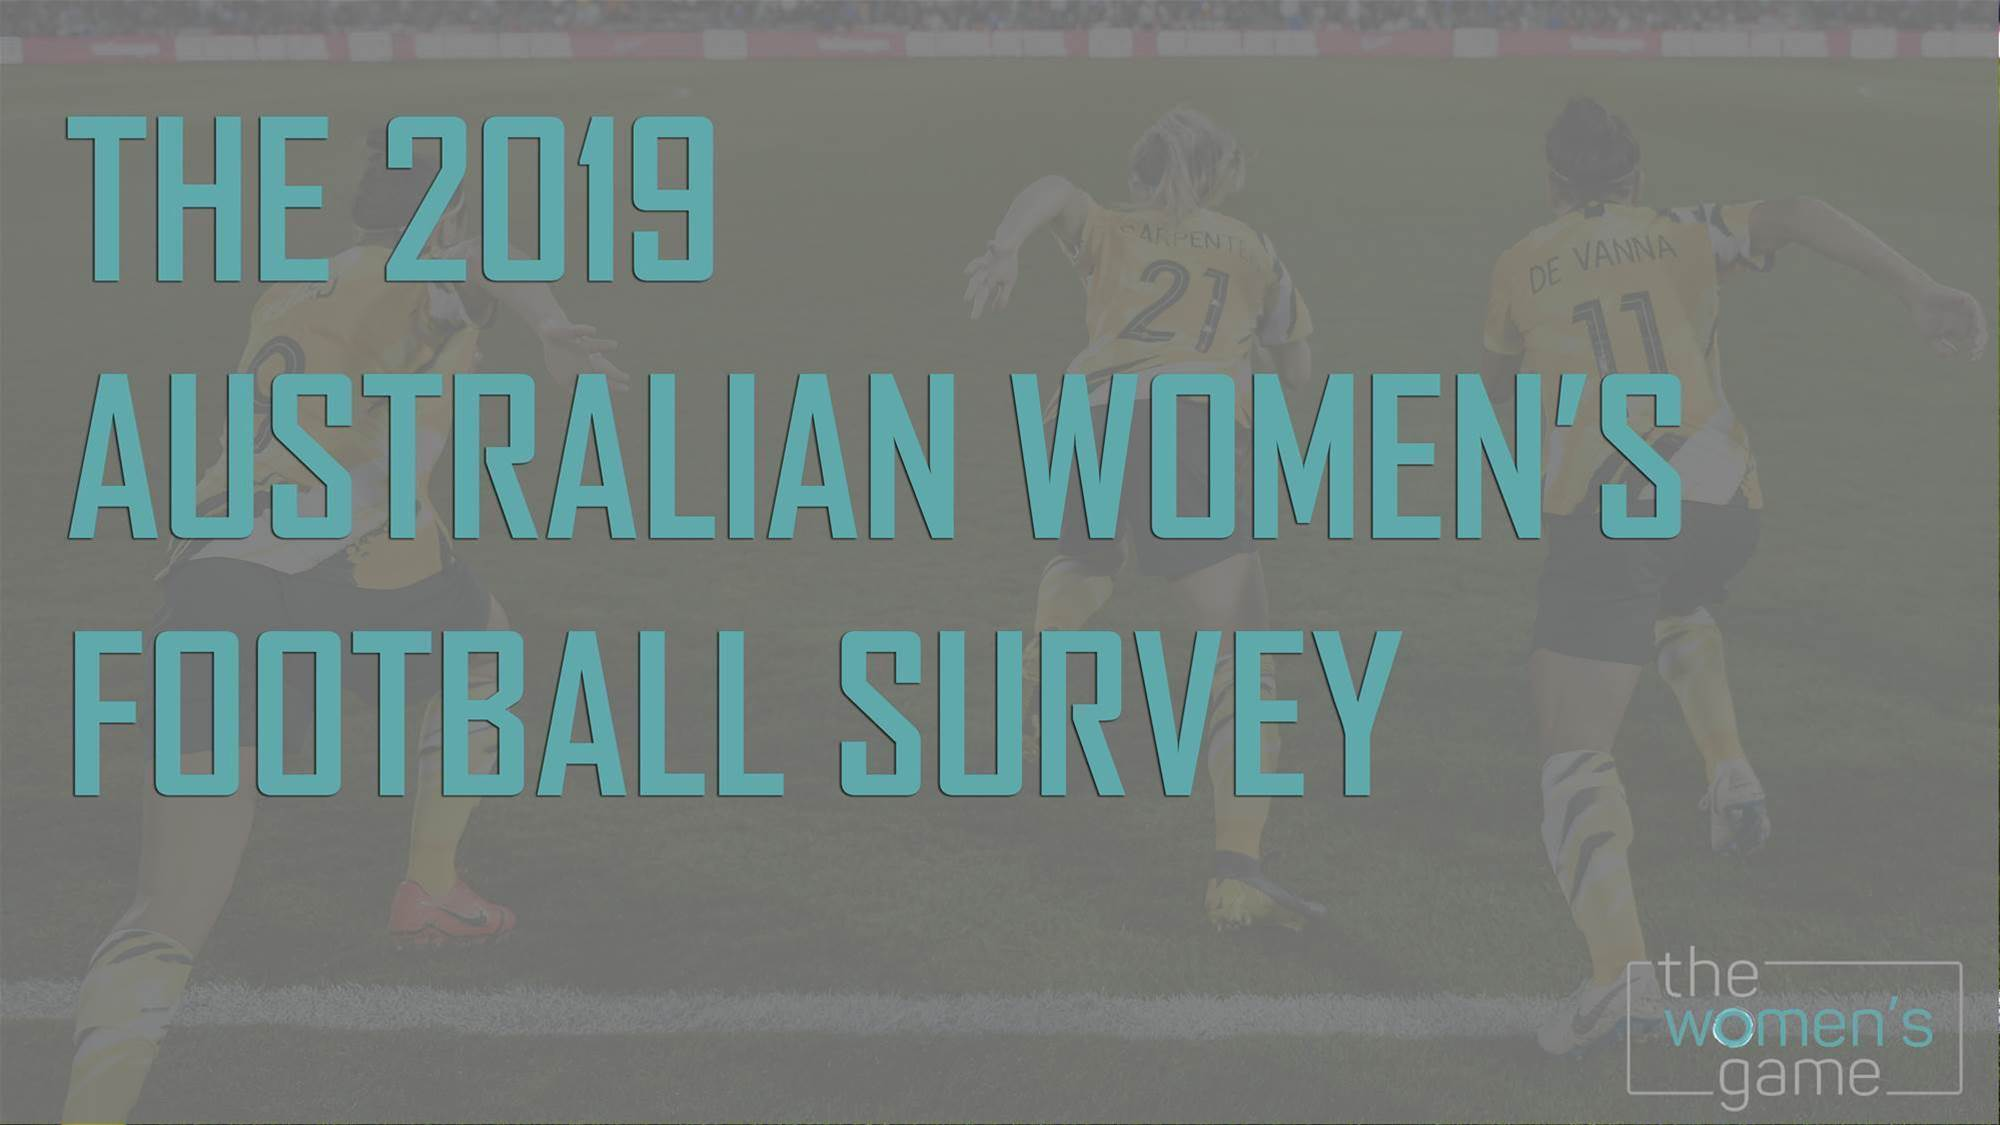 It's here! The 2019 Australian women's football survey